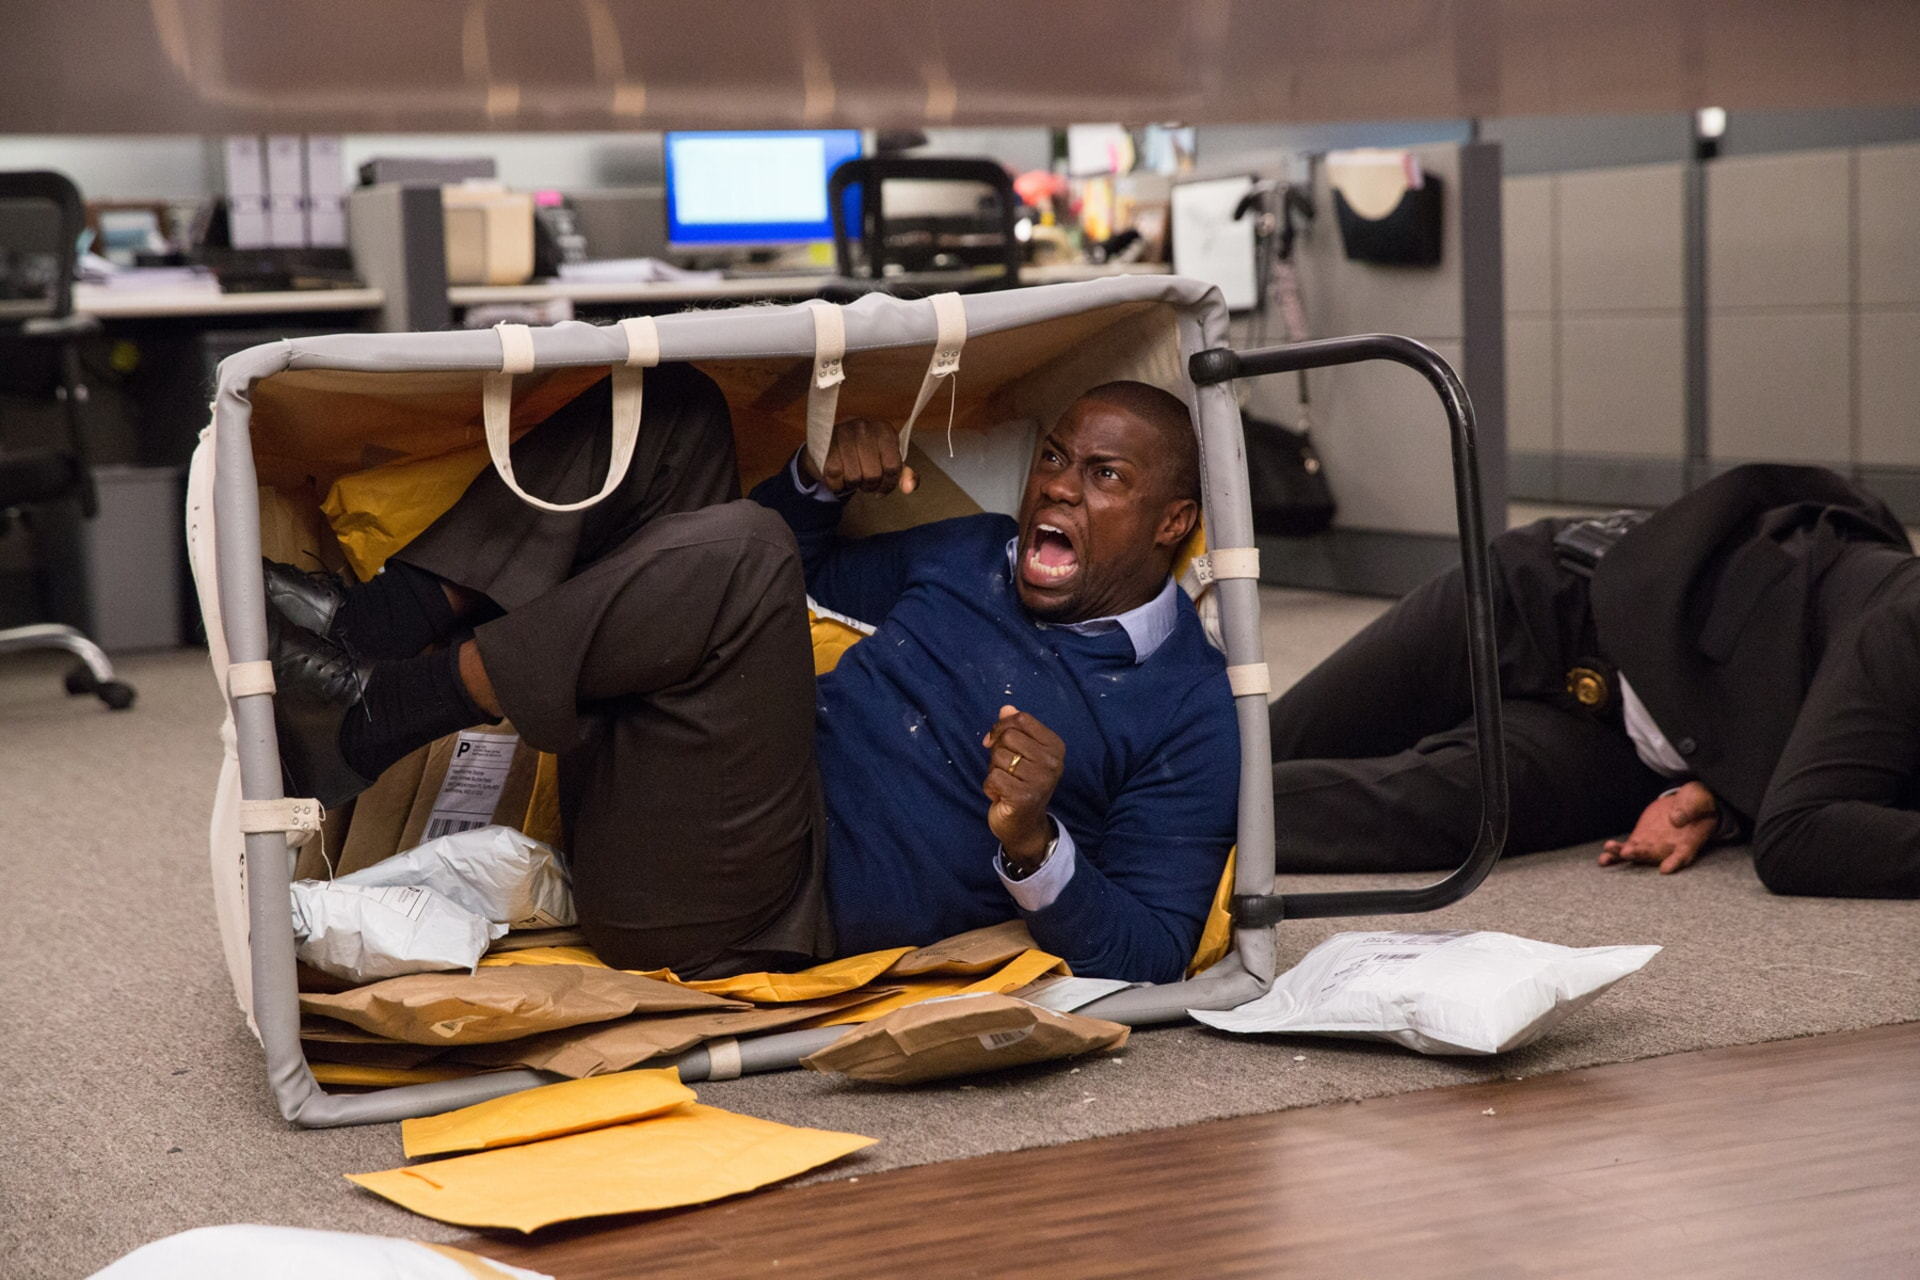 KEVIN HART as Calvin hiding in a mail cart